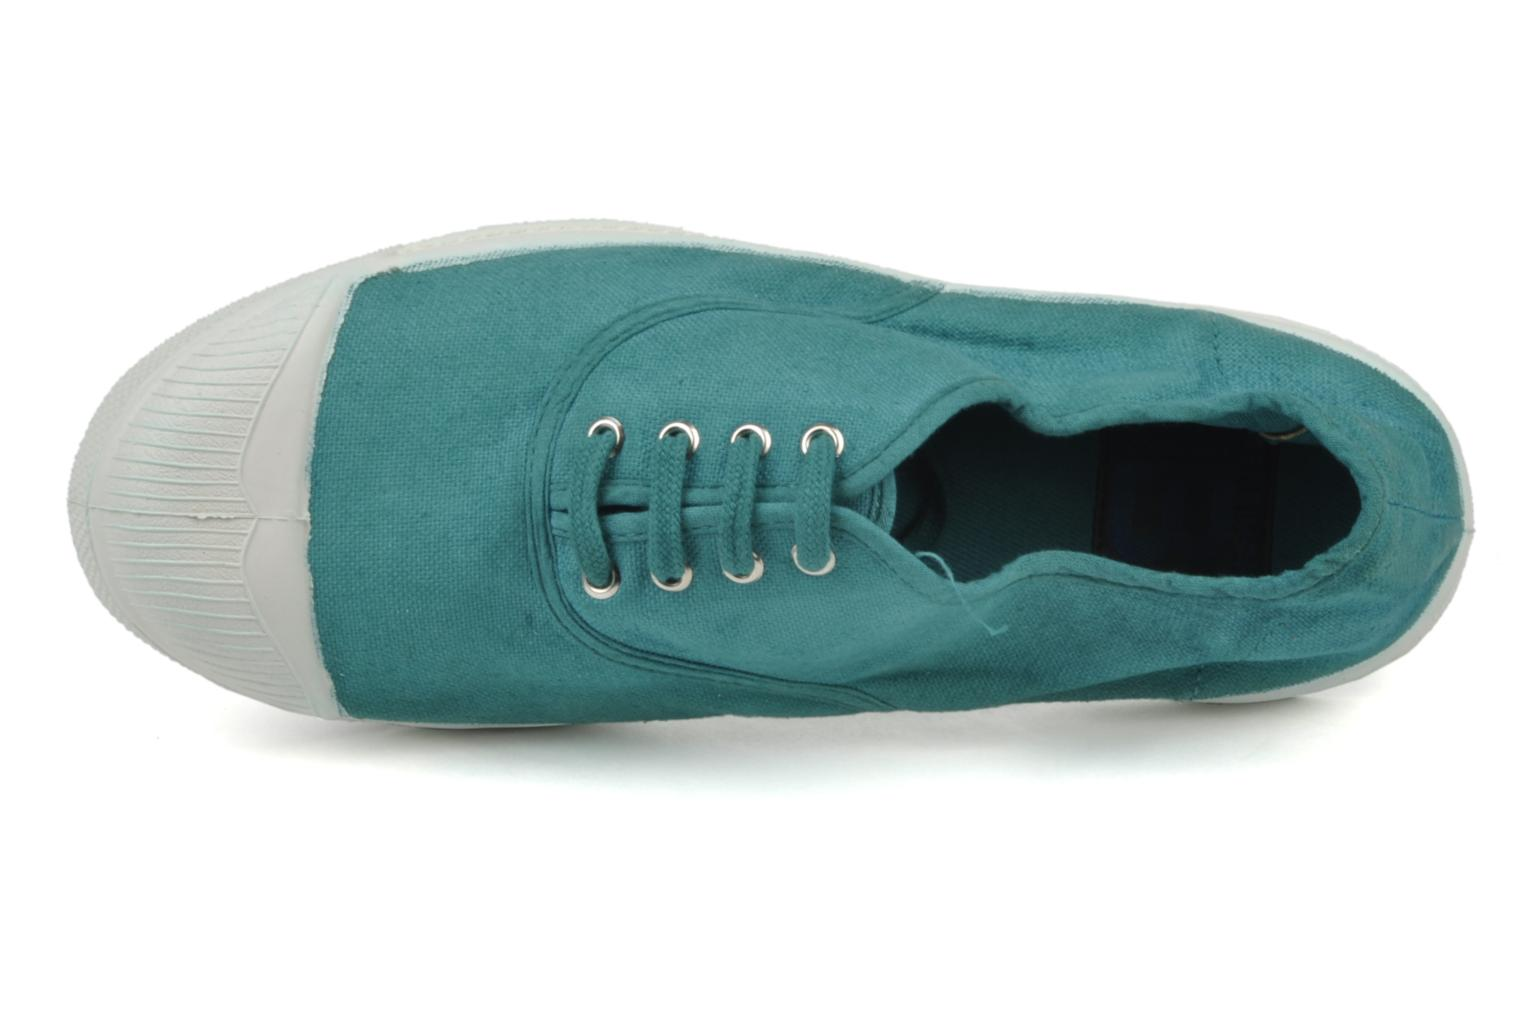 Tennis Lacets Vert Turquoise